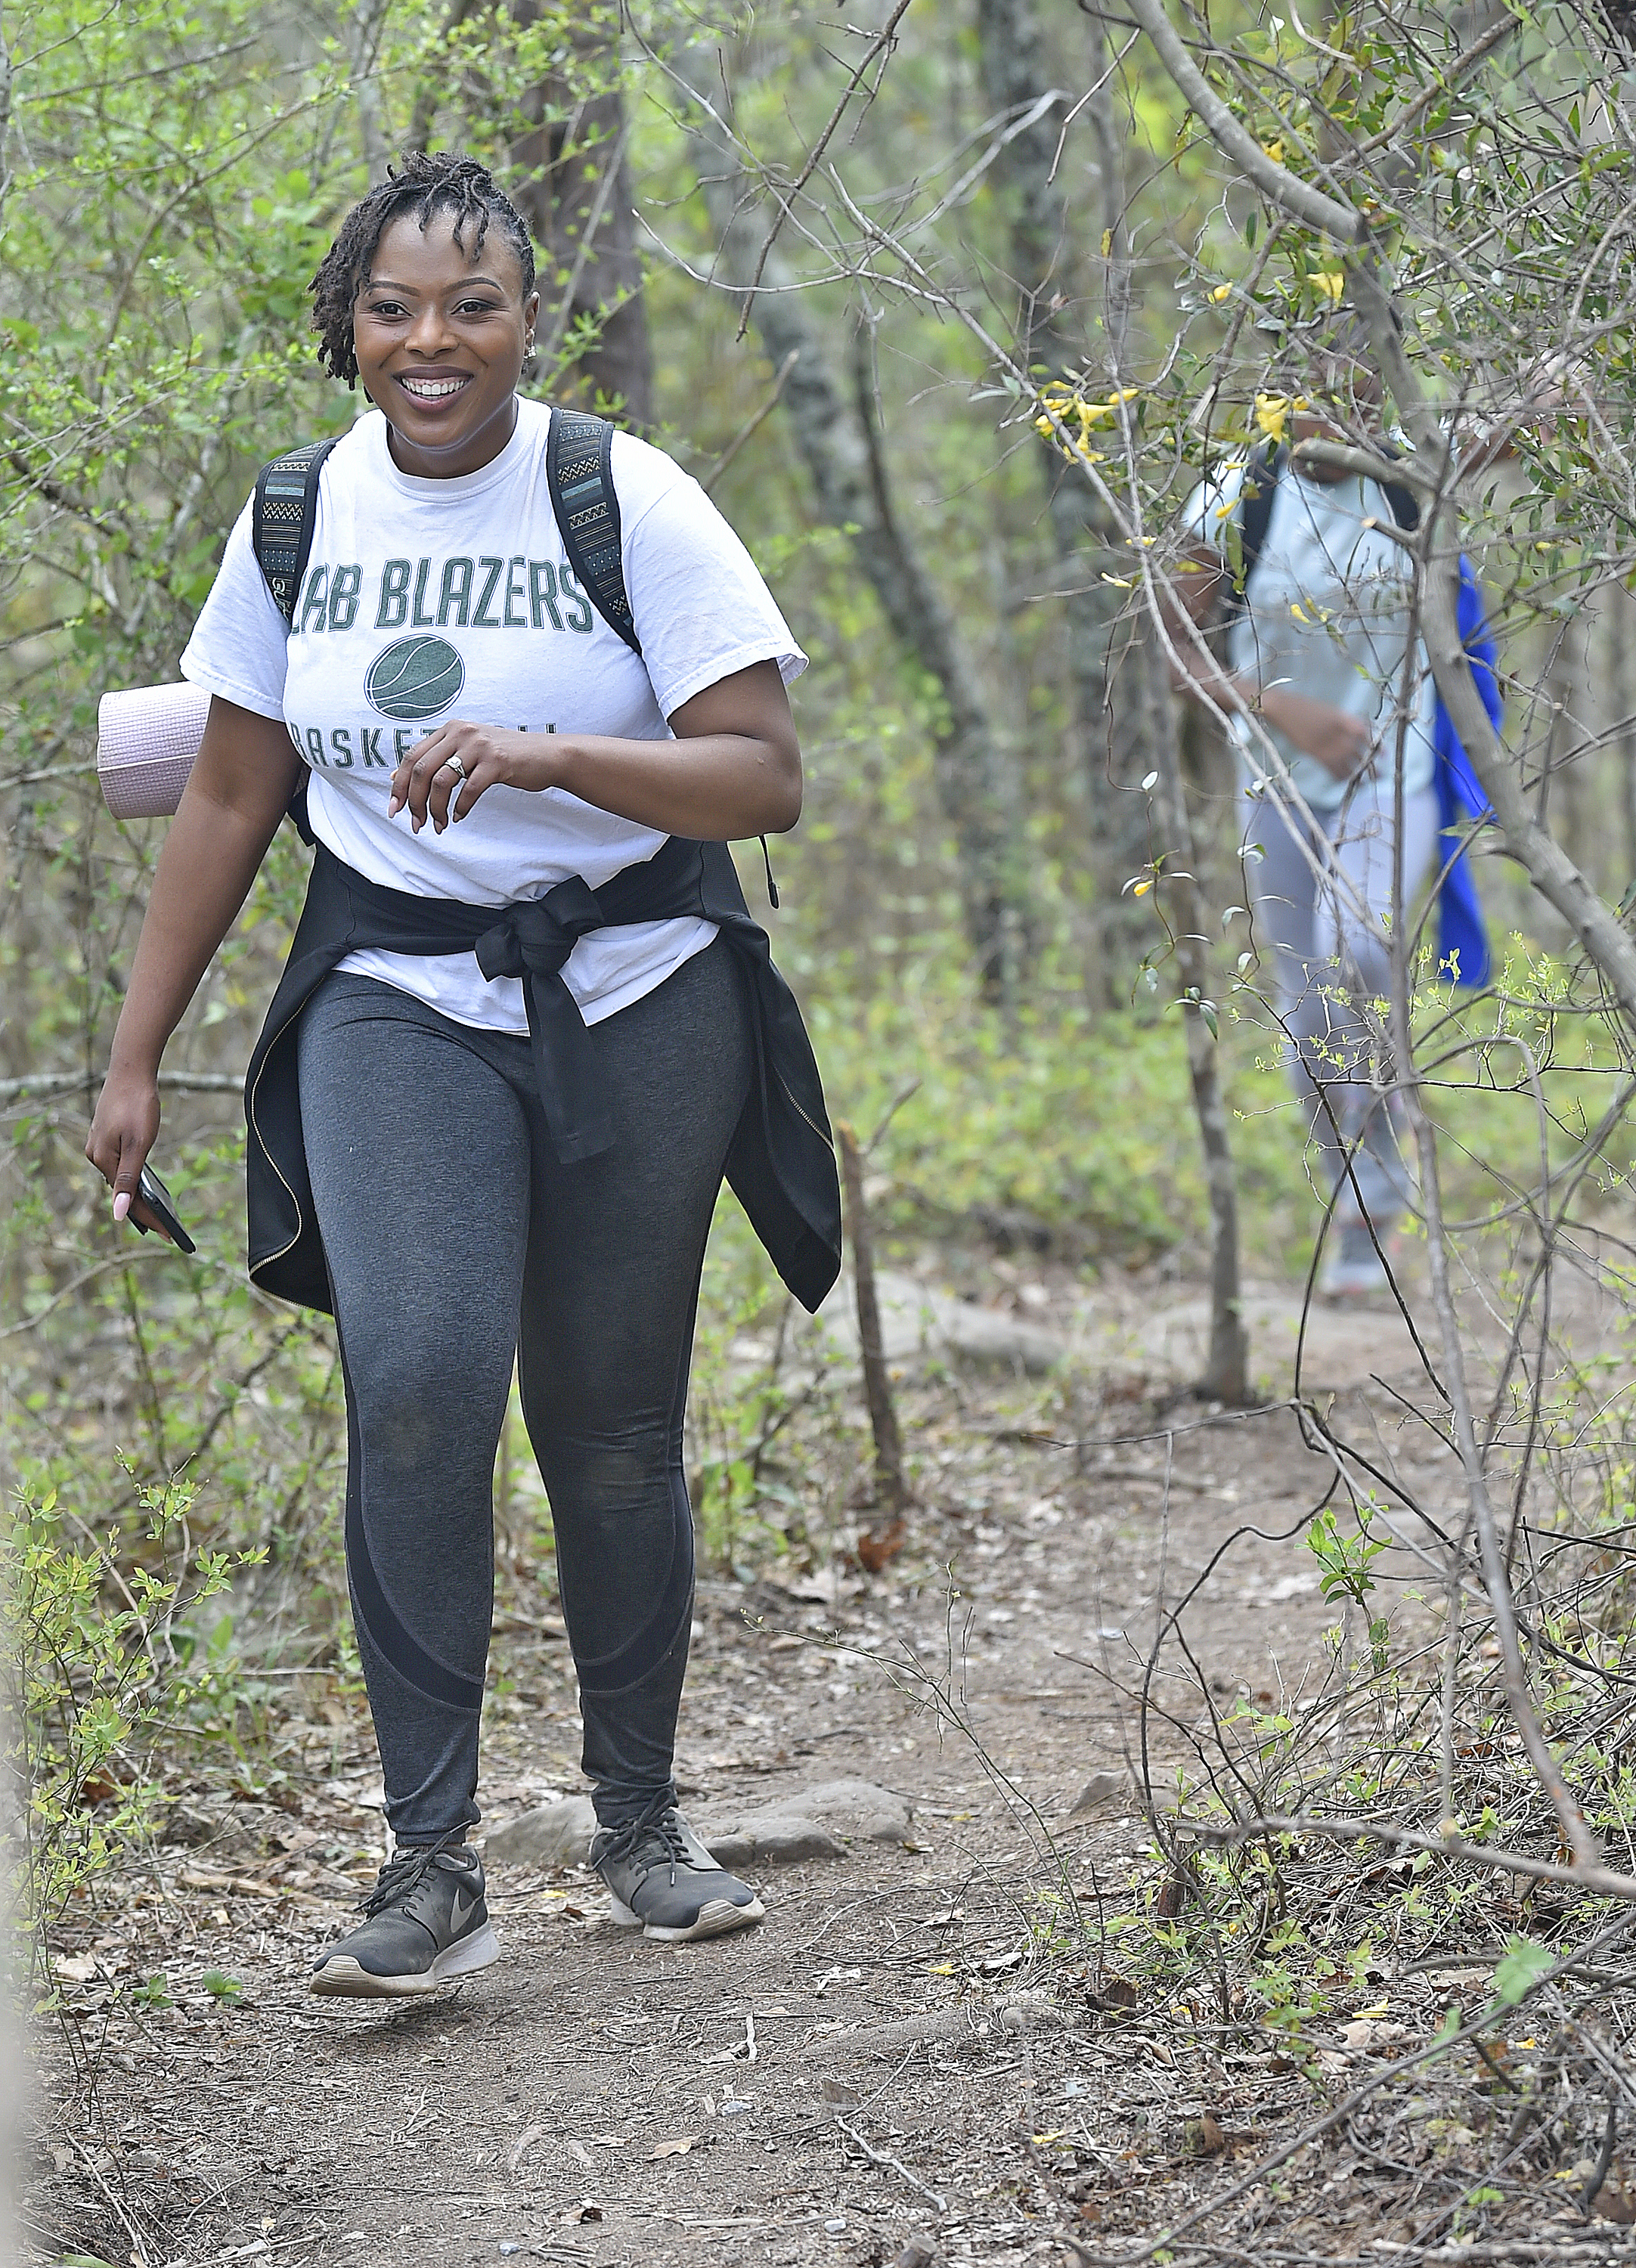 Birmingham-based 'Ladies Who Hike' group: Conquering trails and trials